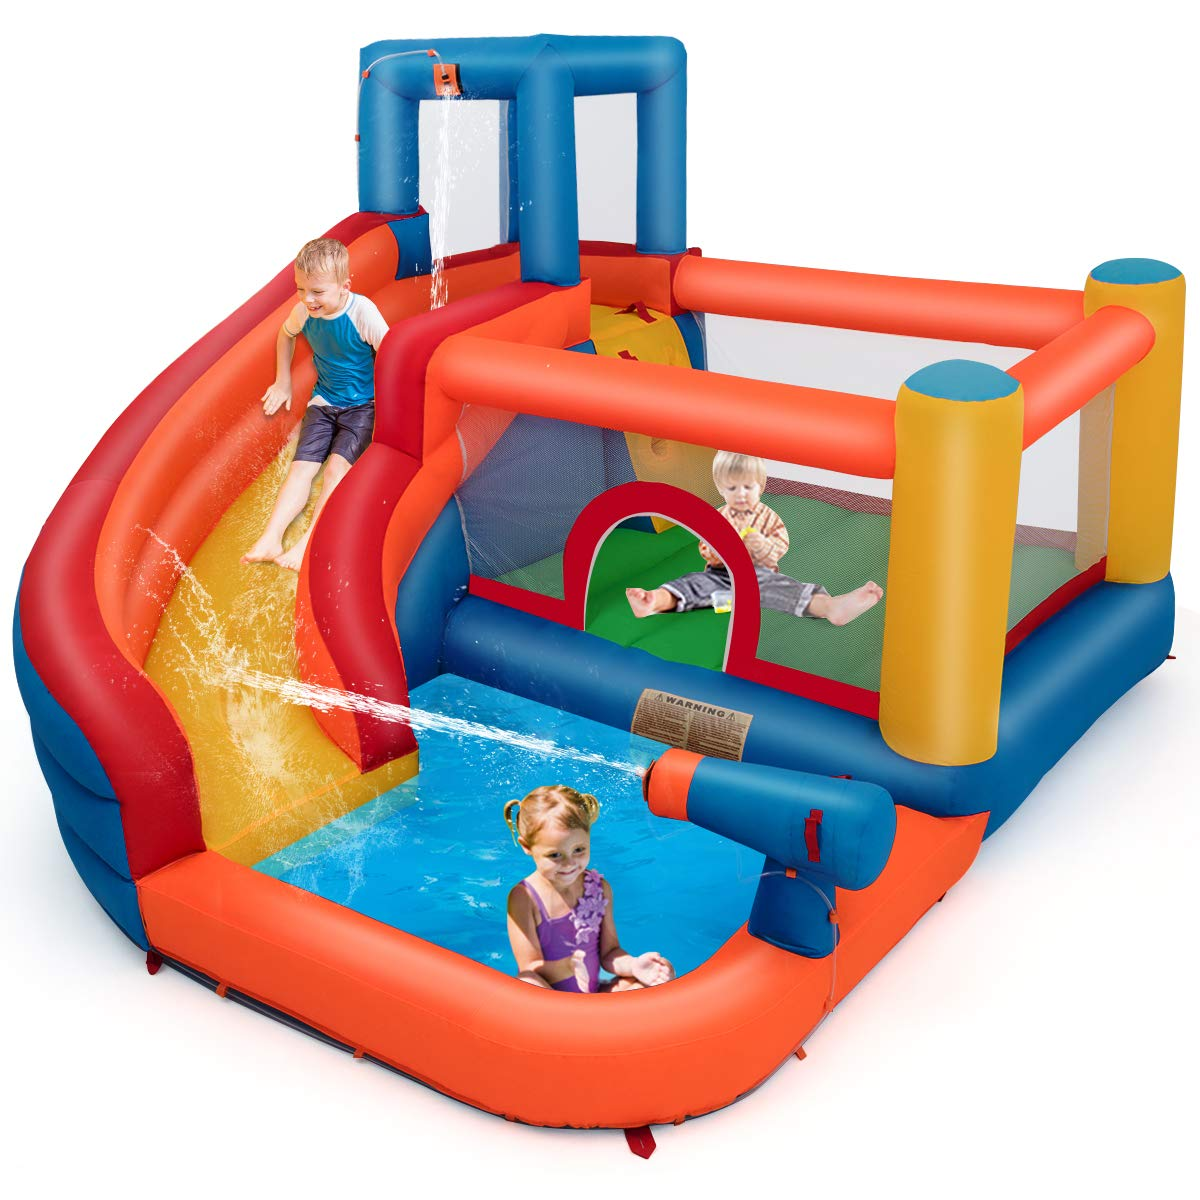 Costzon Inflatable Bounce House, 5-in-1 Water Slide w/ Climbing Wall, Jumping Area, Splash Pool, Water Cannon, Including Oxford Carry Bag, Repairing Kit, Stakes, Hose, Without Blower by Costzon (Image #1)